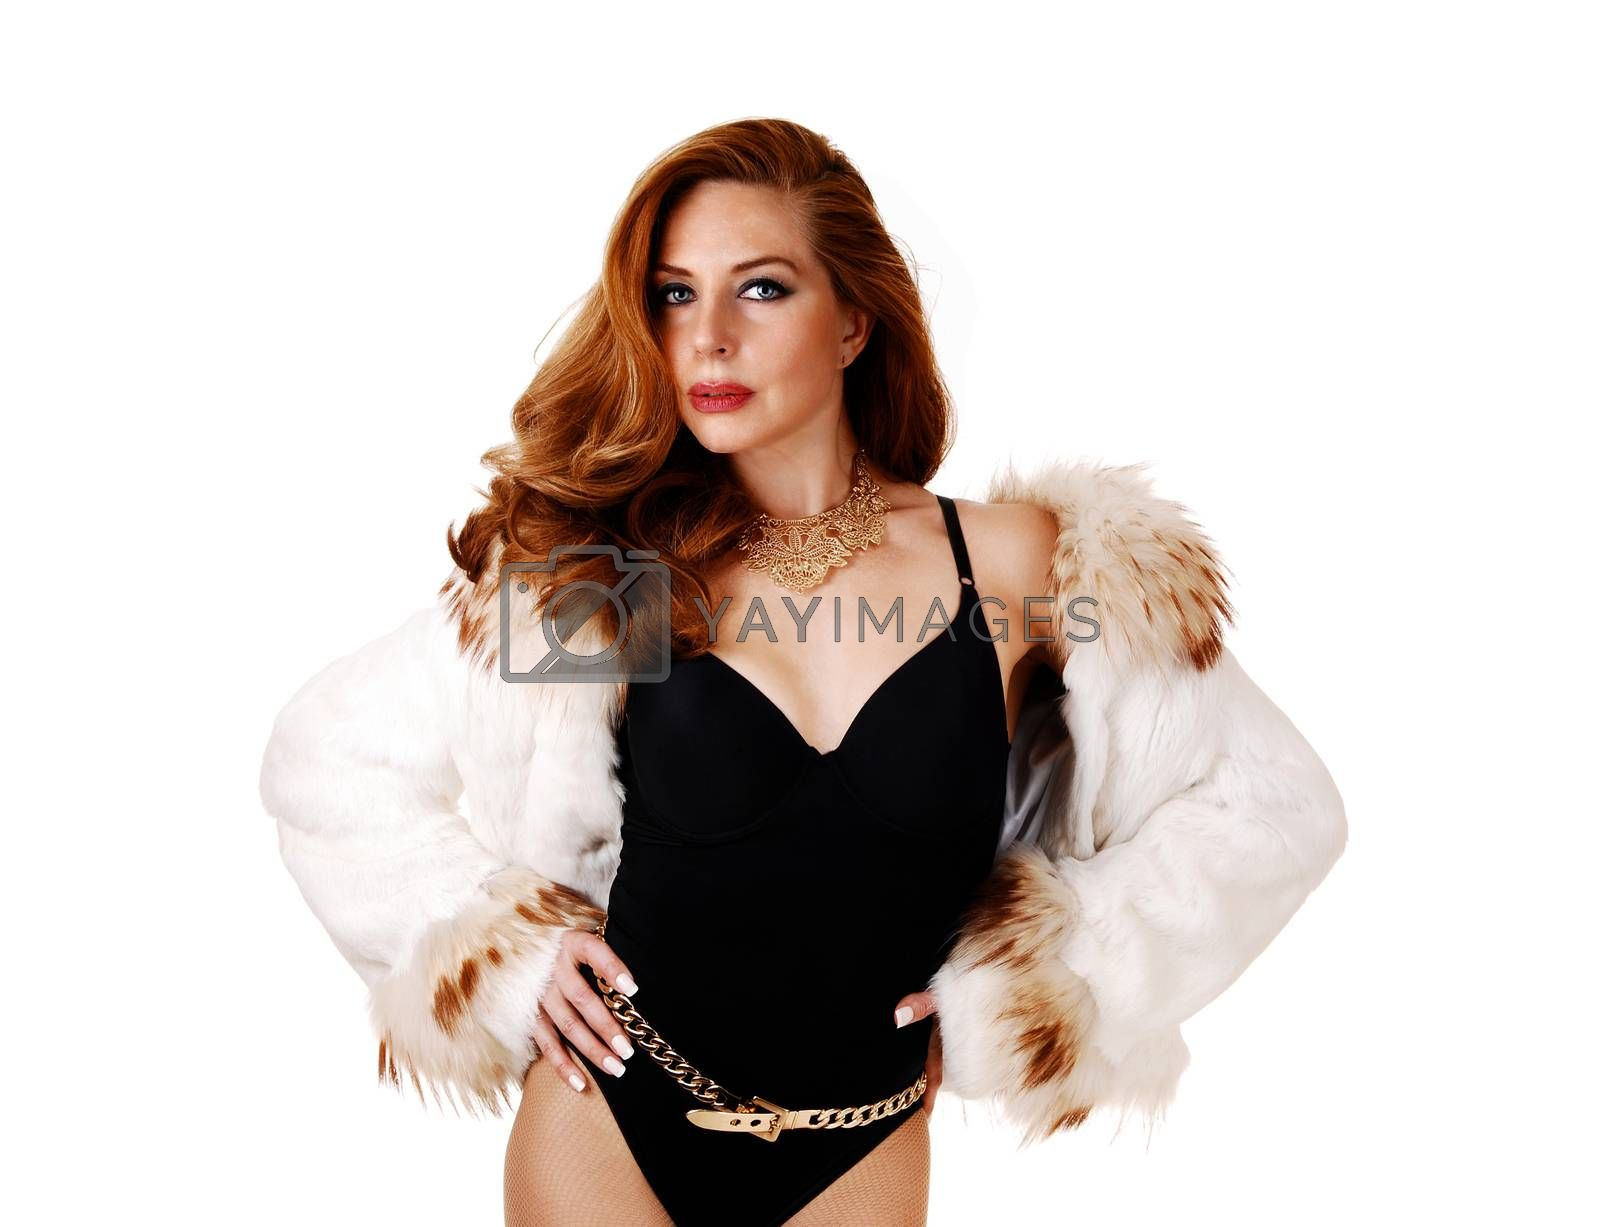 Royalty free image of Woman in corset and fur jacked. by feierabend